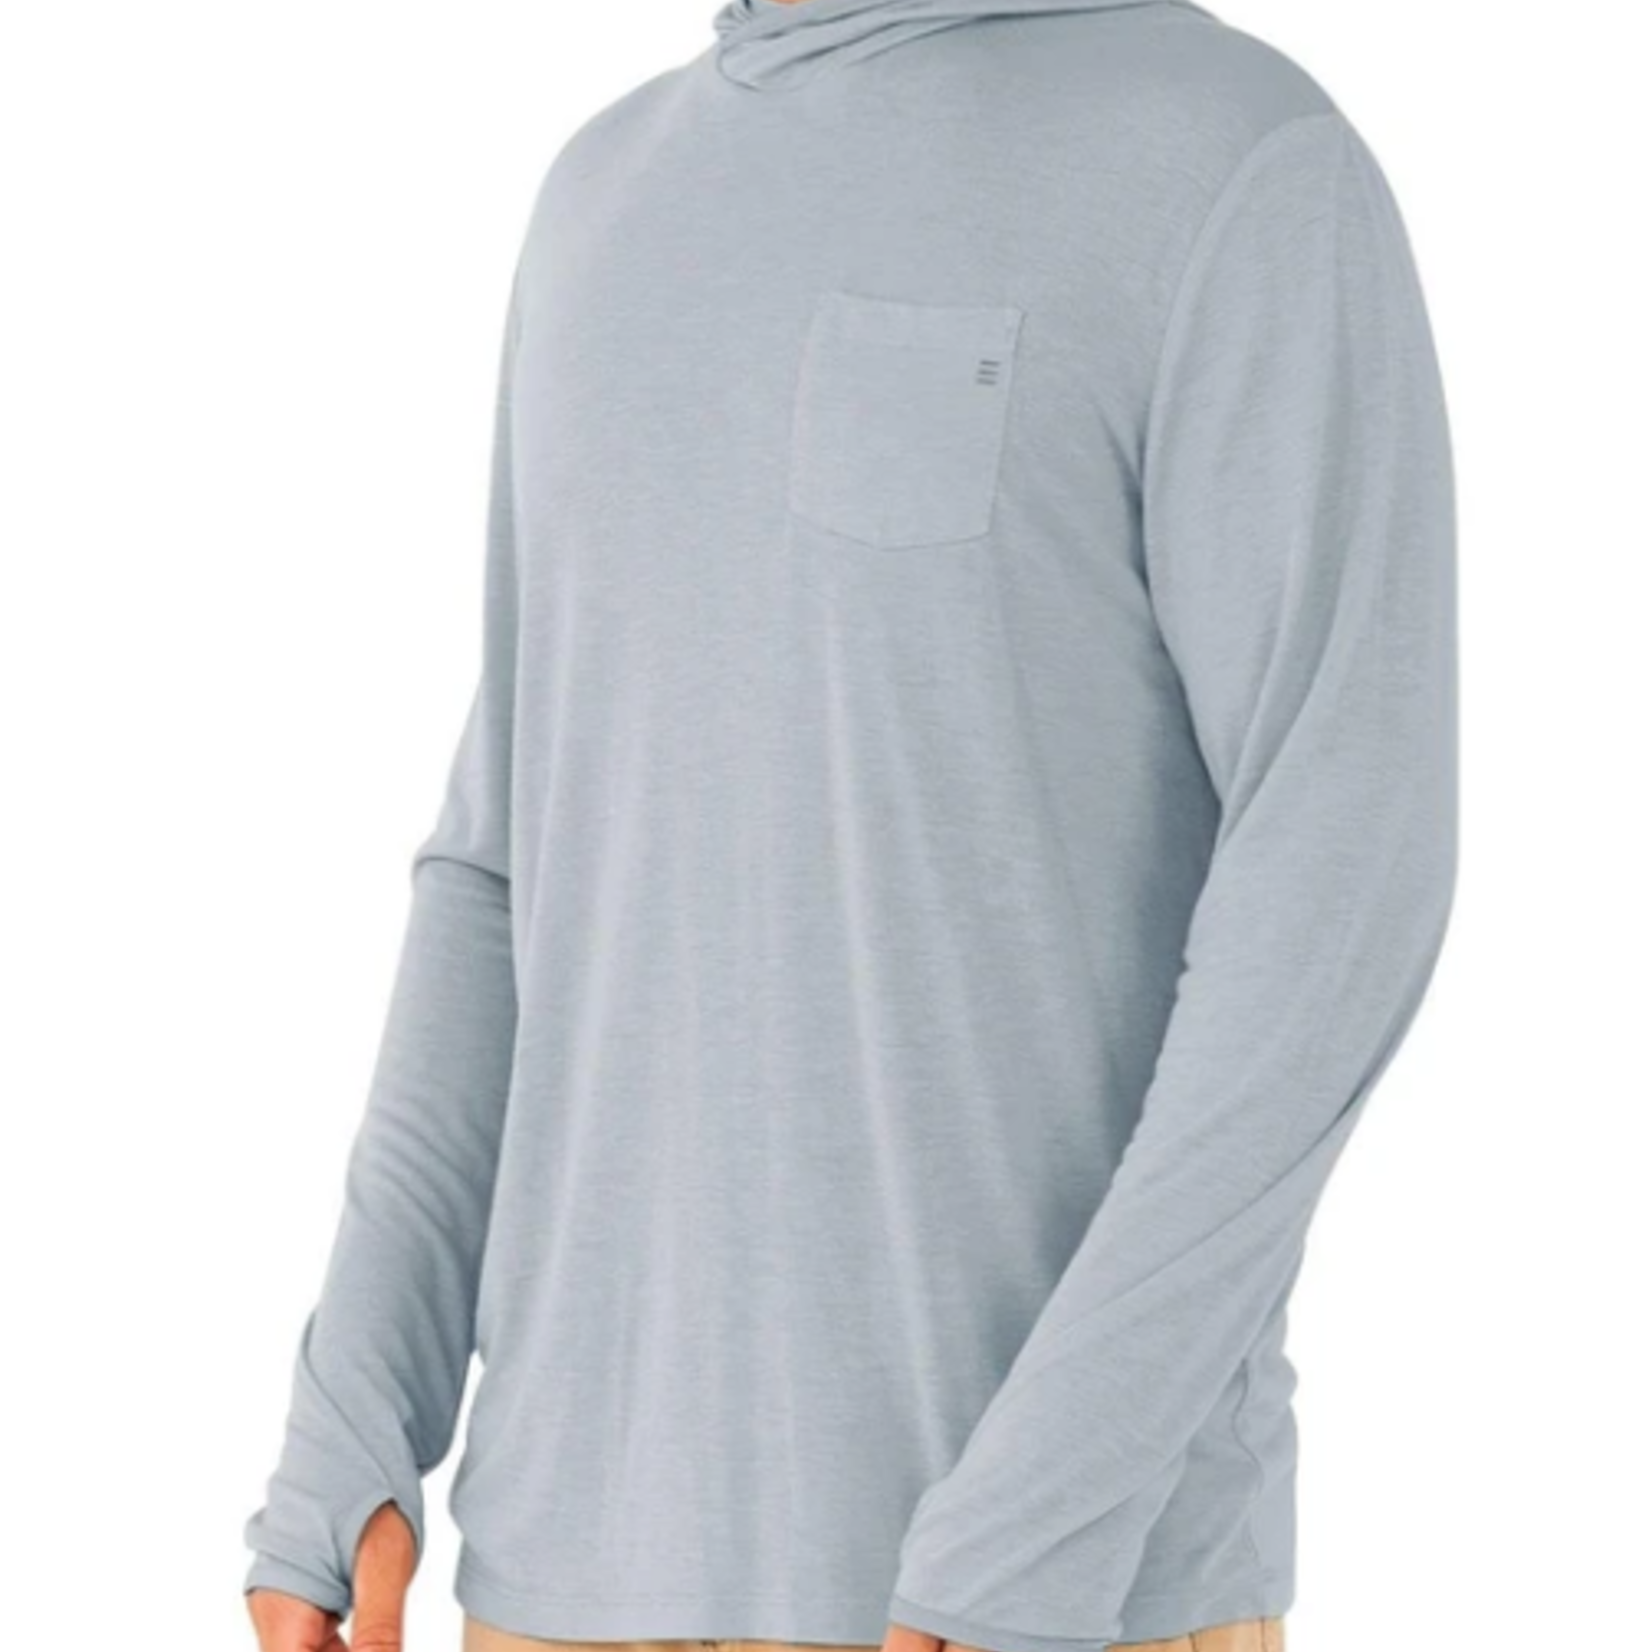 Free Fly Free Fly M's Bamboo Lightweight Hoody - P-143789